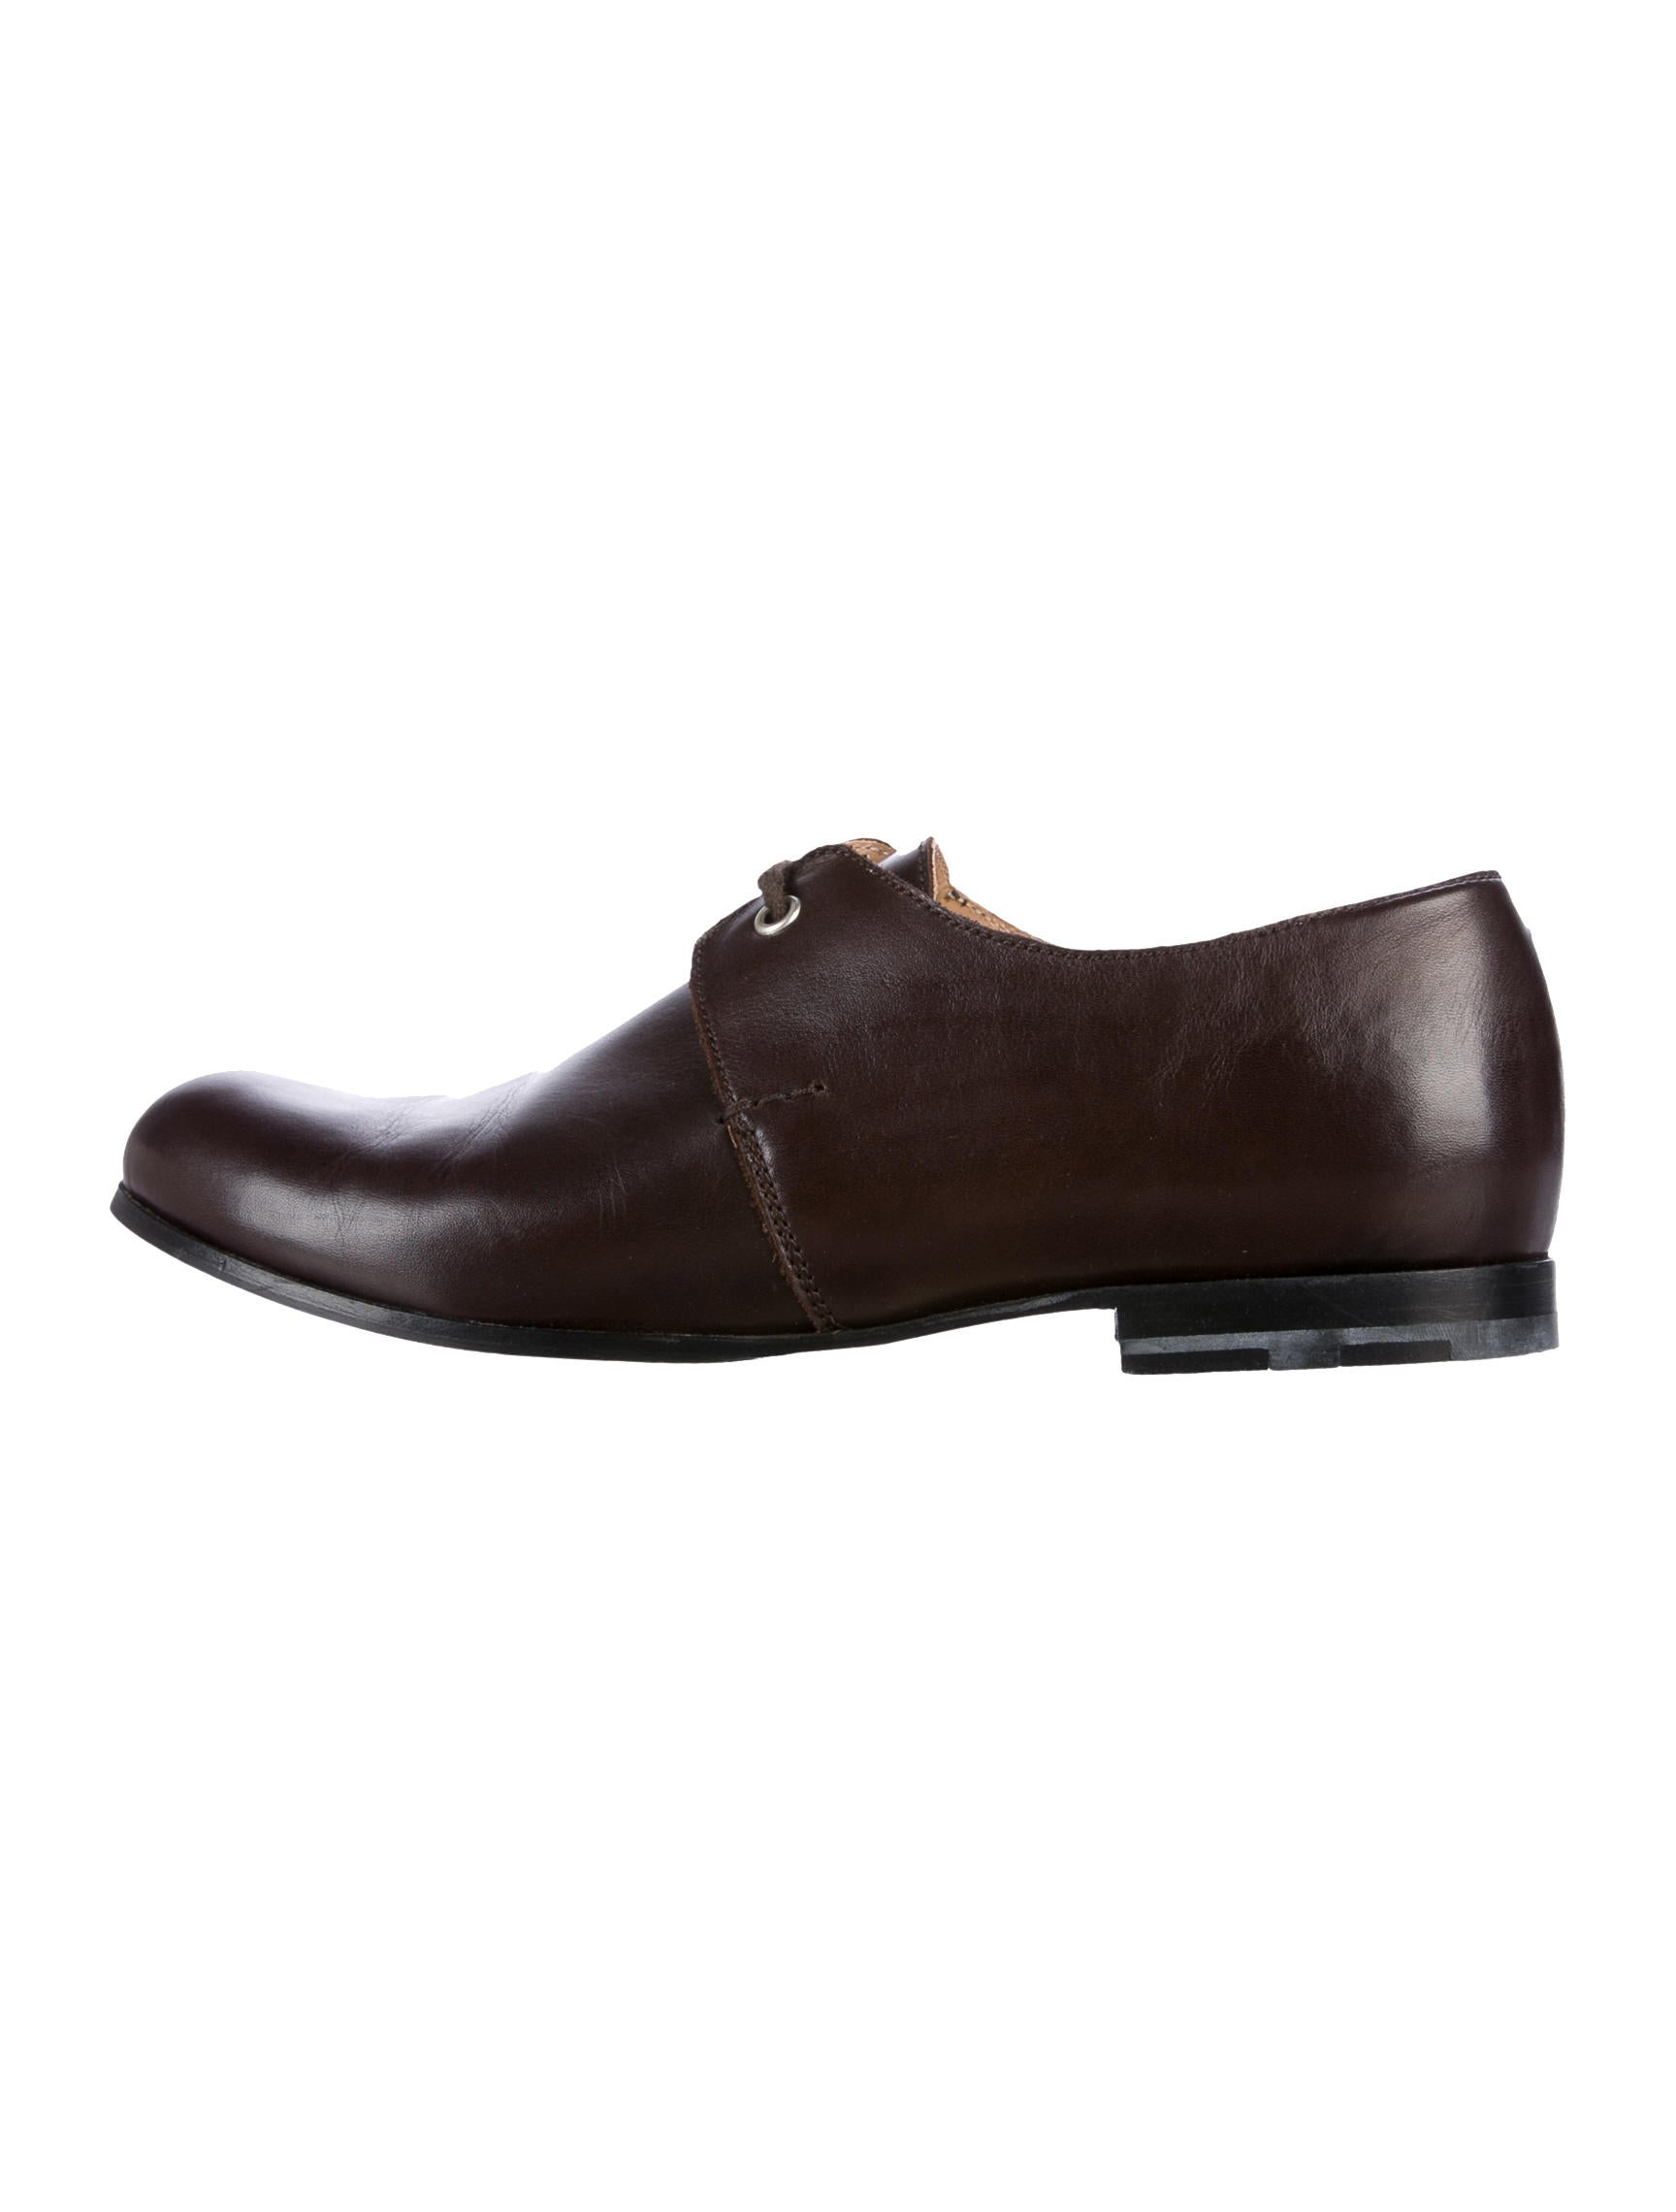 Heschung x Comme des Garçons Heschung x Comme des Garçons Leather Round-Toe Oxfords quality from china cheap collections for sale 7wyzOsT